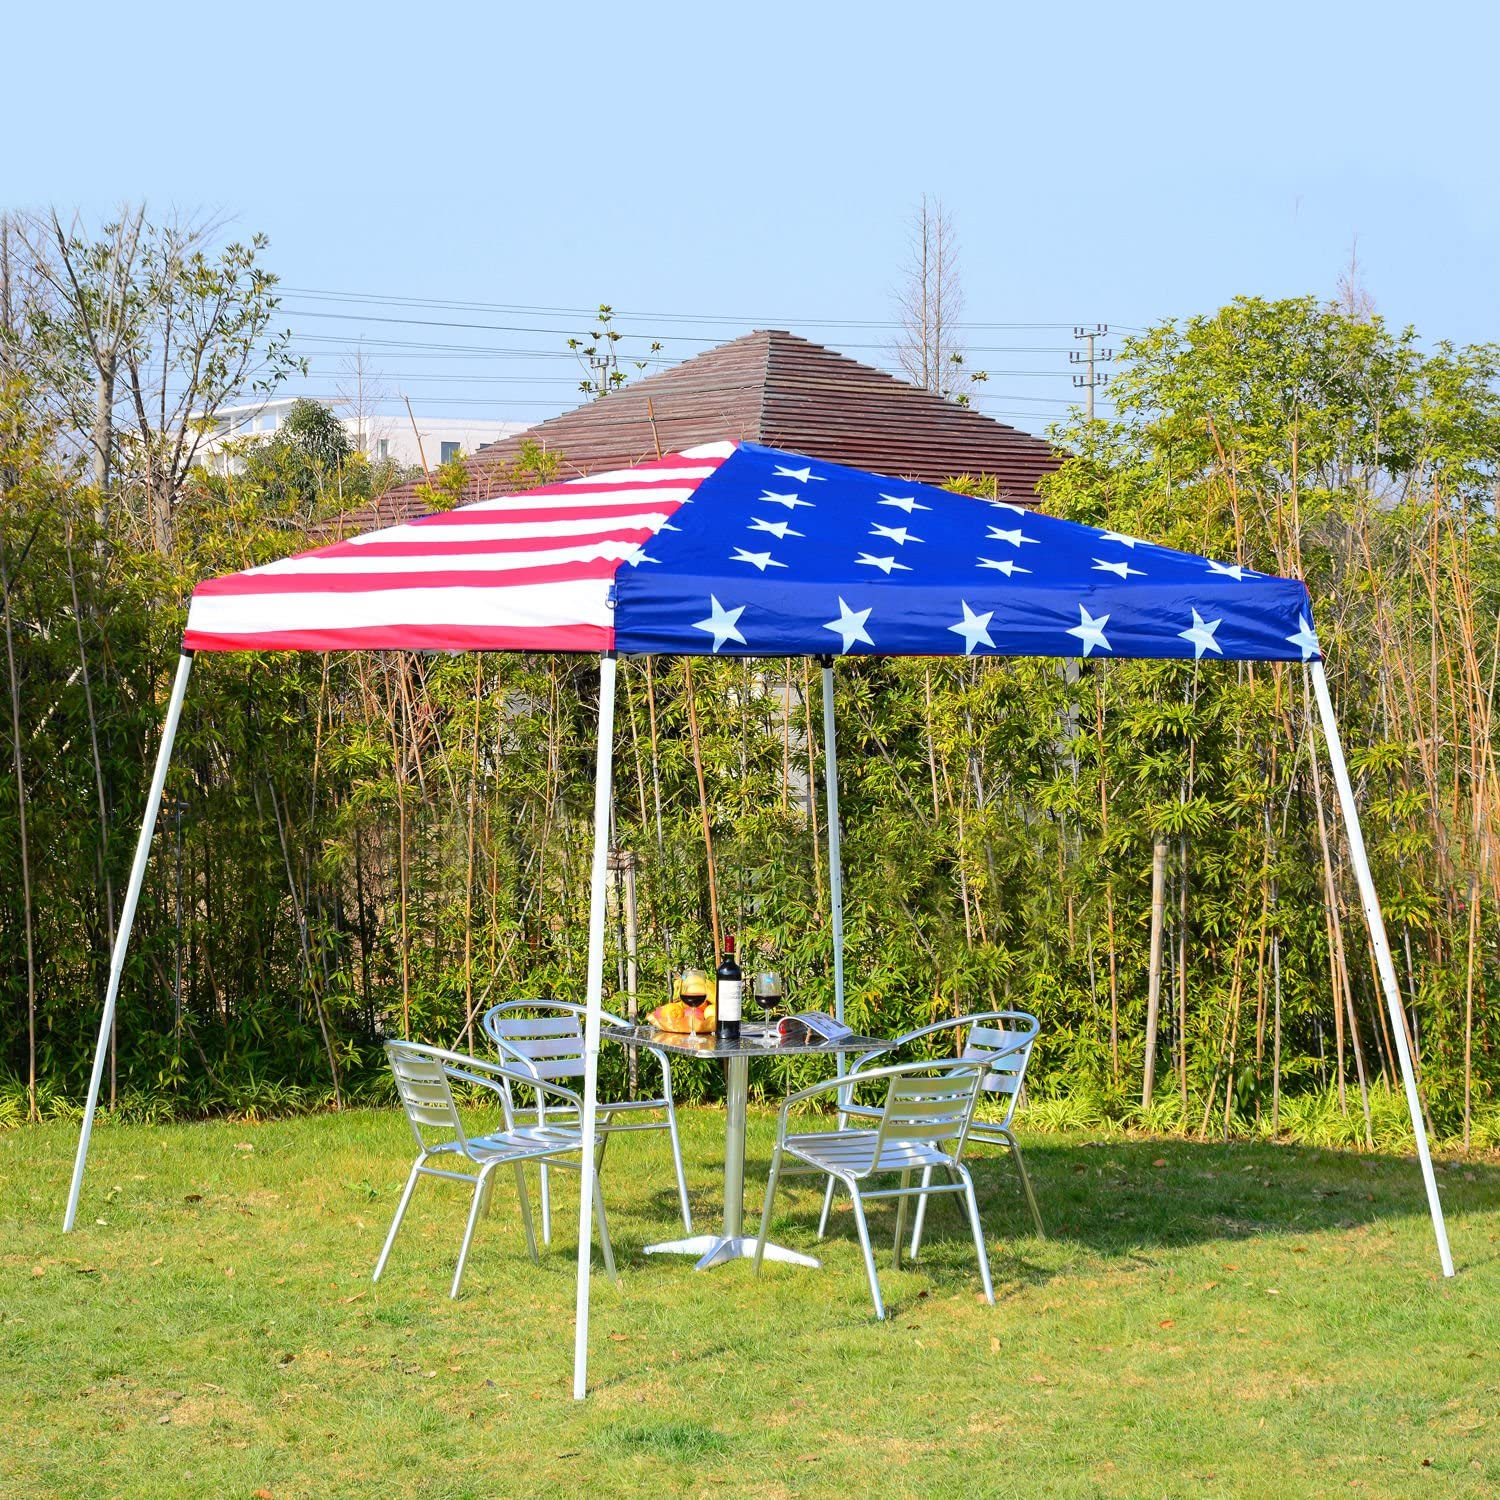 Outsunny – 10 x 10 Slant Pierna Pop-up toldo Refugio Carpa – American Flag: Amazon.es: Jardín